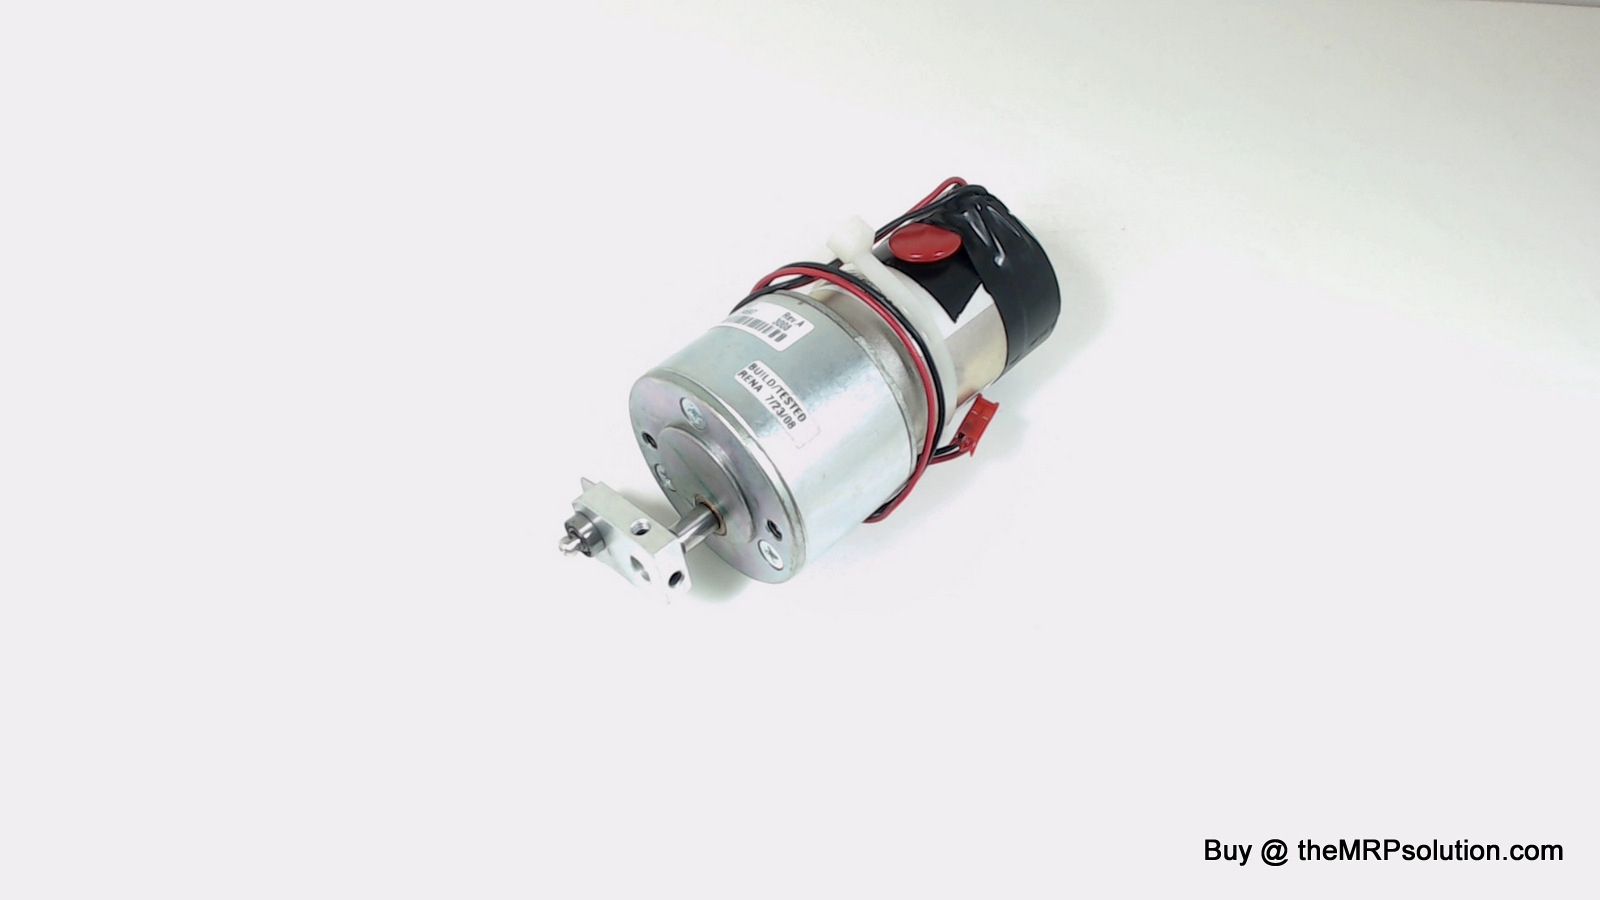 ZEBRA G30374M DRIVE MOTOR, CUTTER OPTION, XI4 New